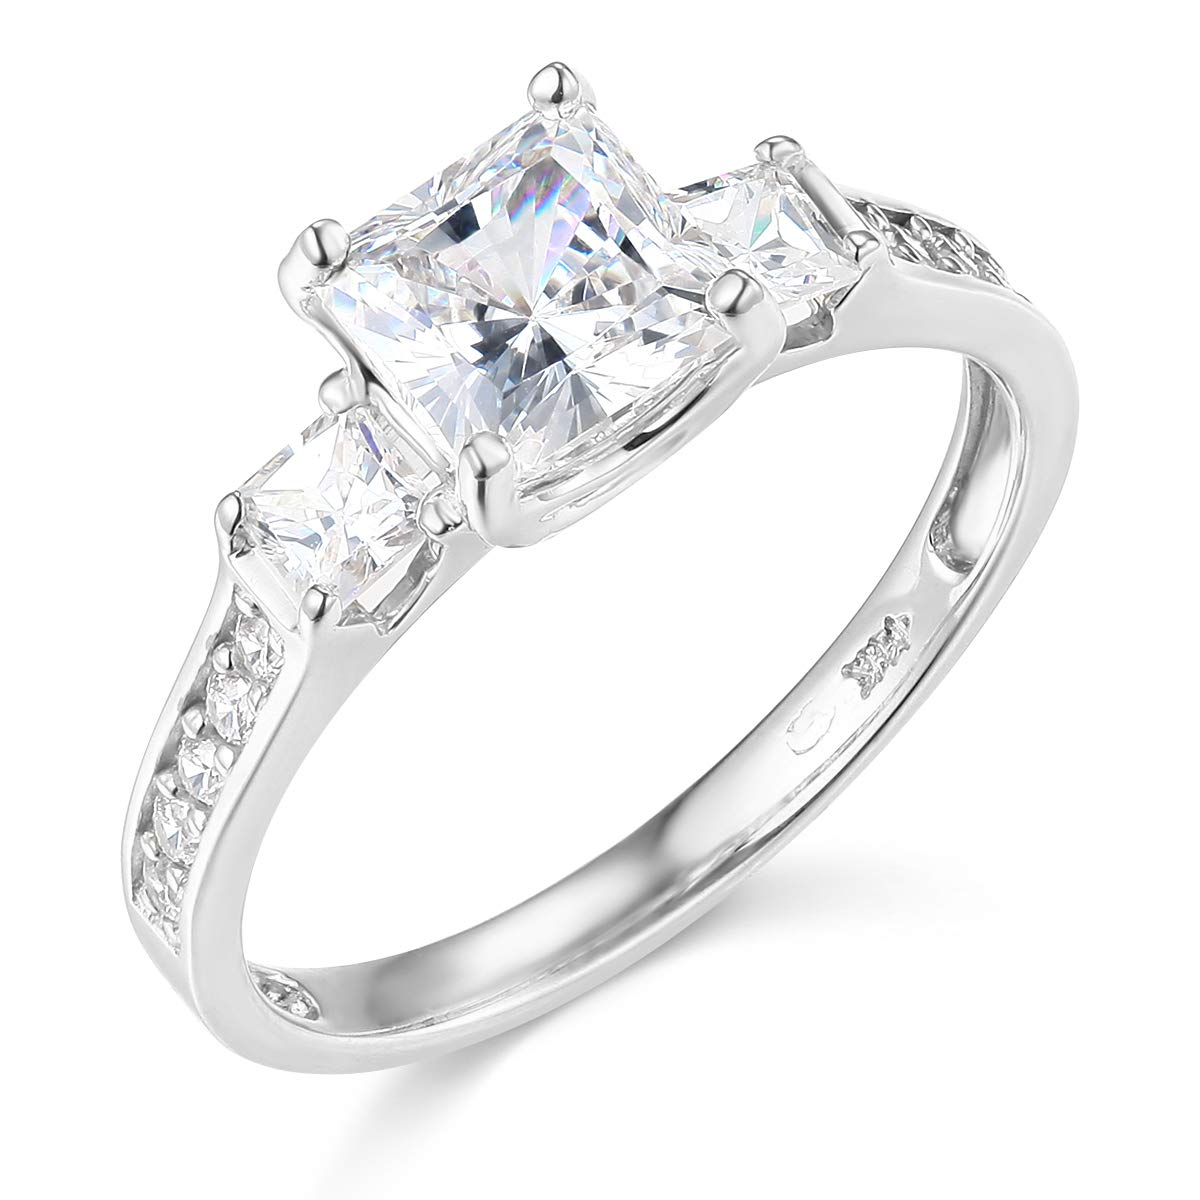 Wellingsale Ladies 925 Sterling Silver Polished Rhodium CZ Cubic Zirconia Wedding Engagement Ring